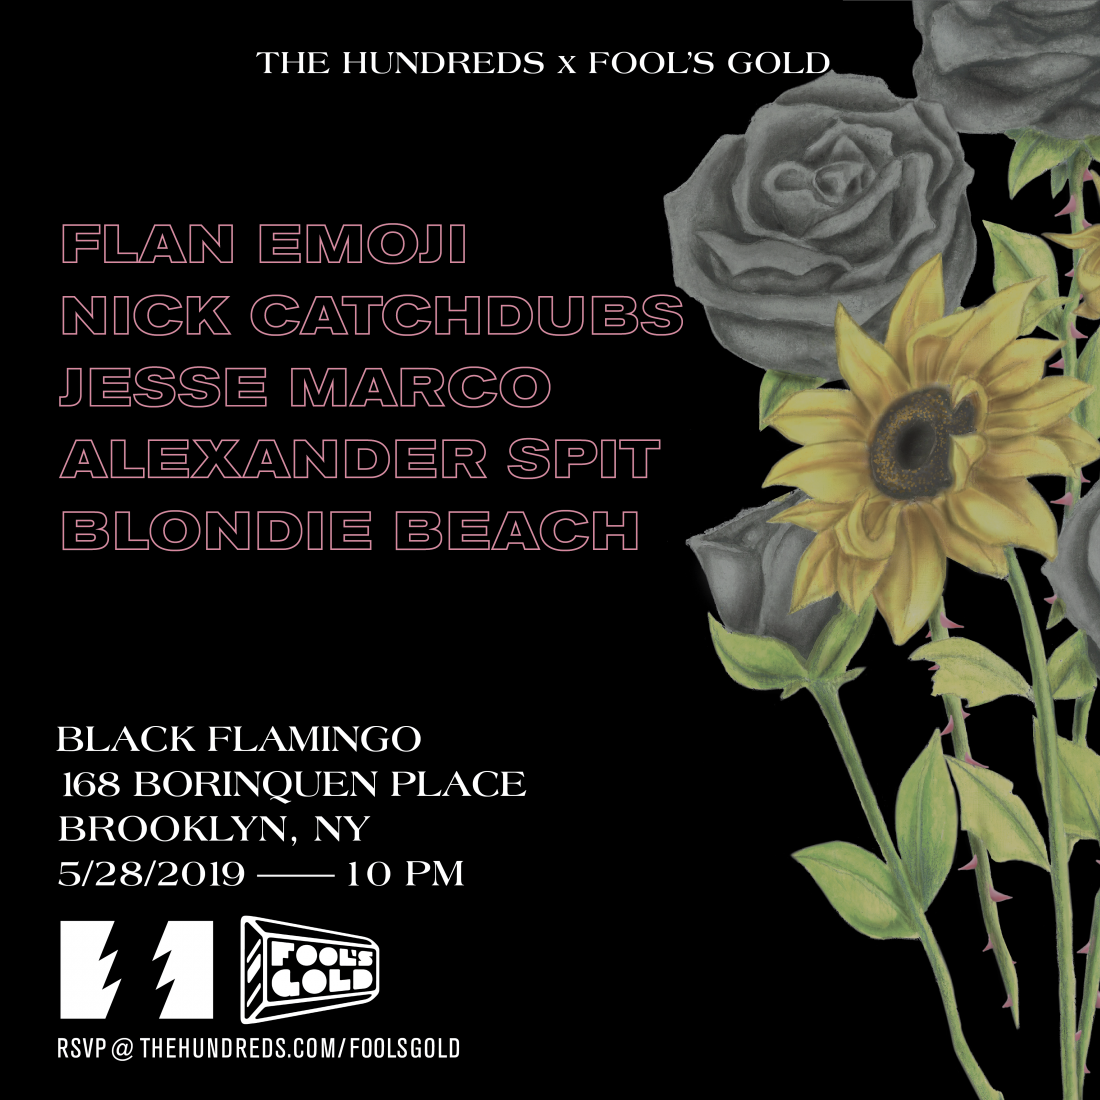 Rsvp The Hundreds X Fools Gold In Brooklyn 5 28